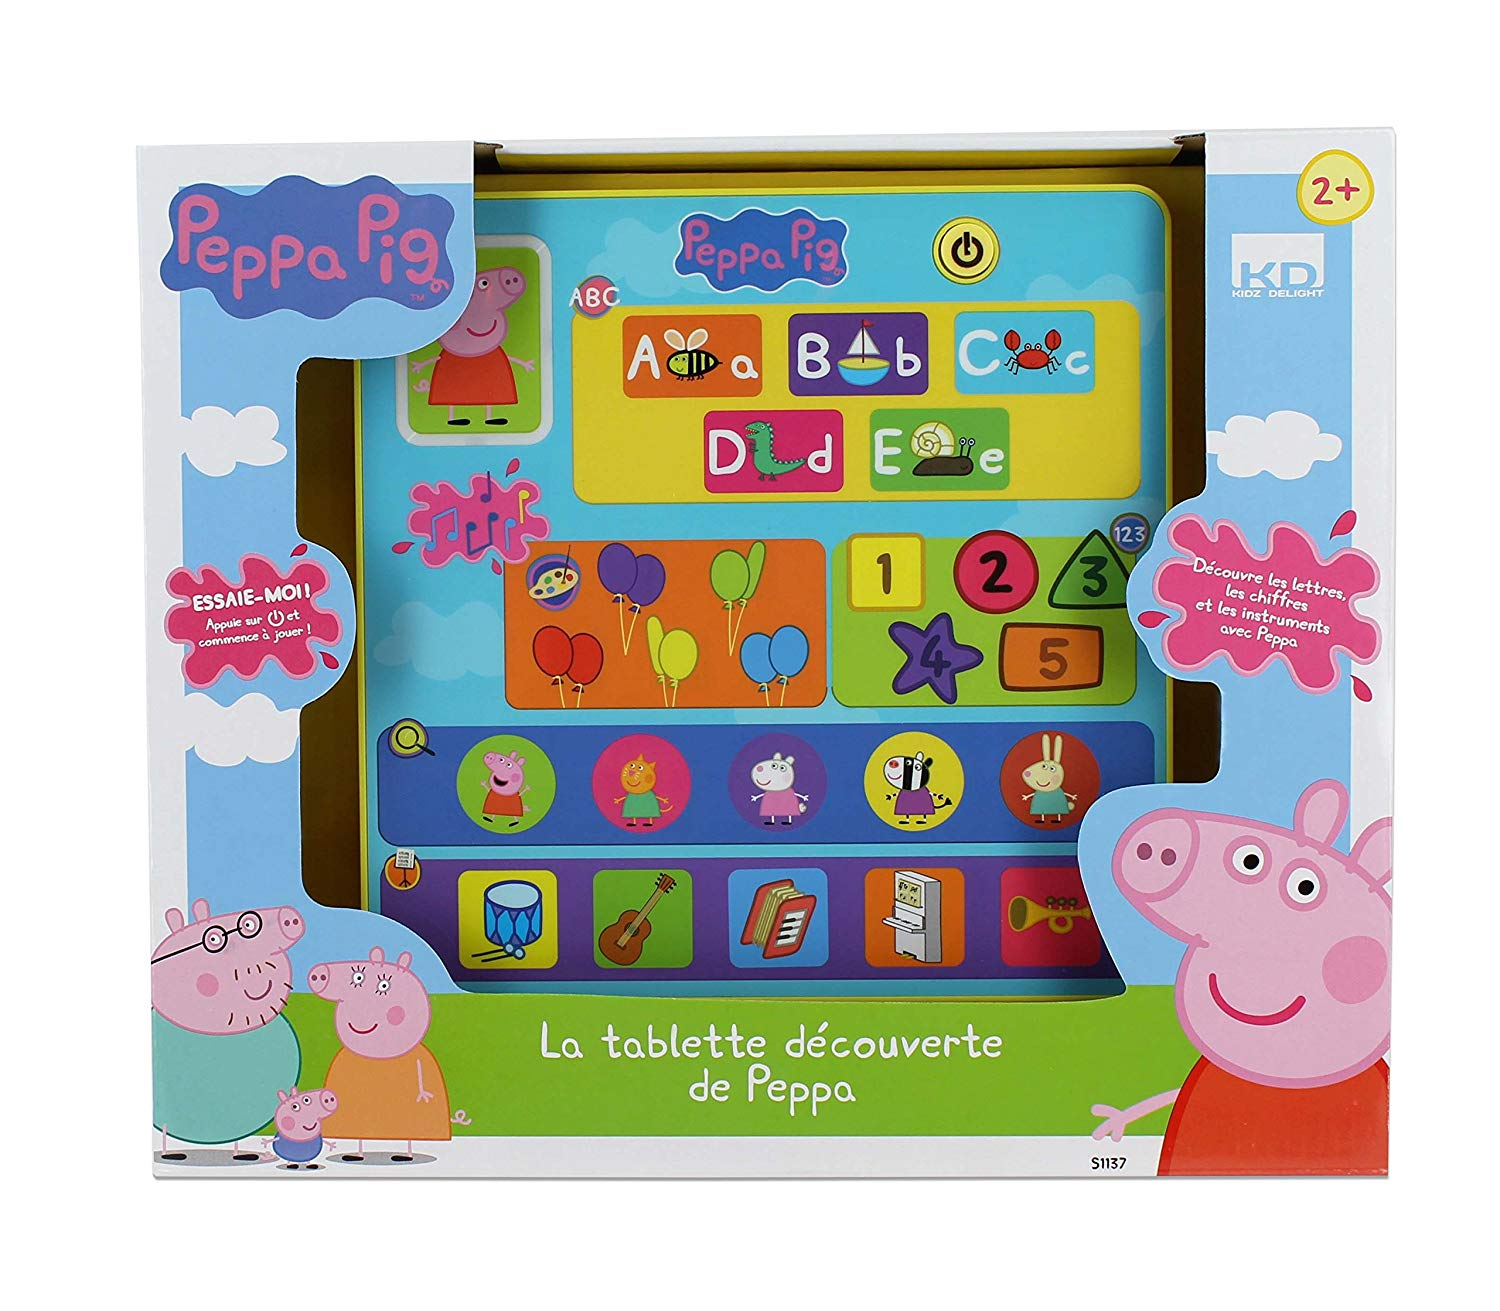 Cuisine Peppa Pig Smoby 310605 Peppa Pig Mini Cuisine Transportable 17